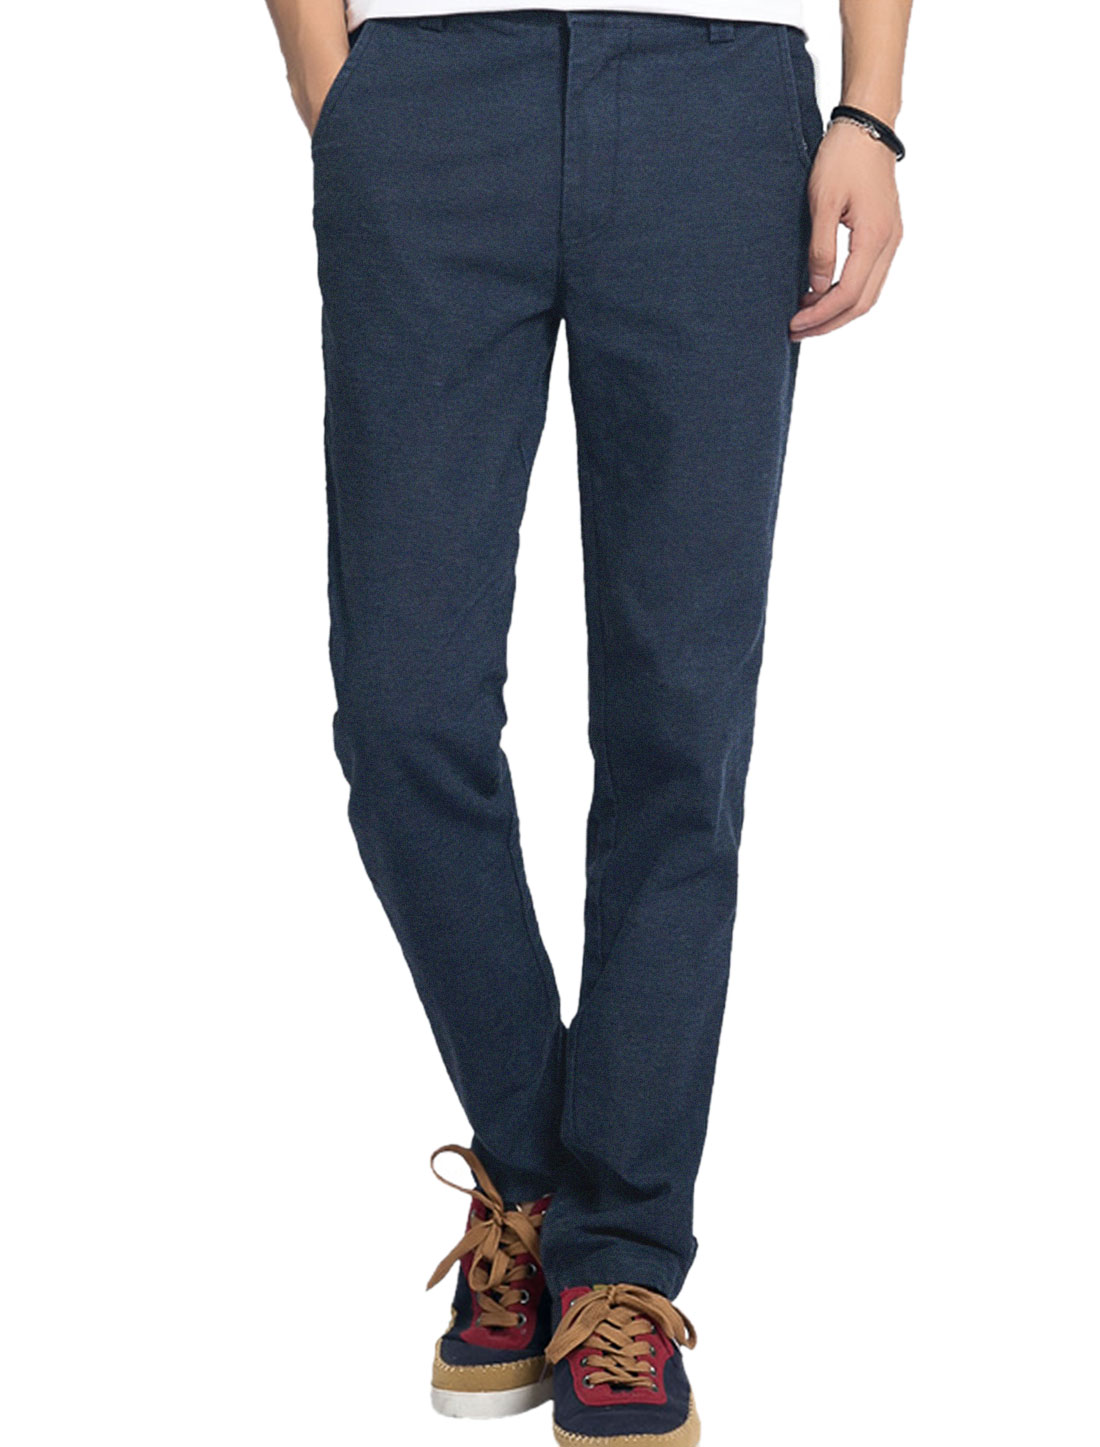 Men Belt Loop Hip Pockets with Button Decor Casual Pants Navy Blue W32